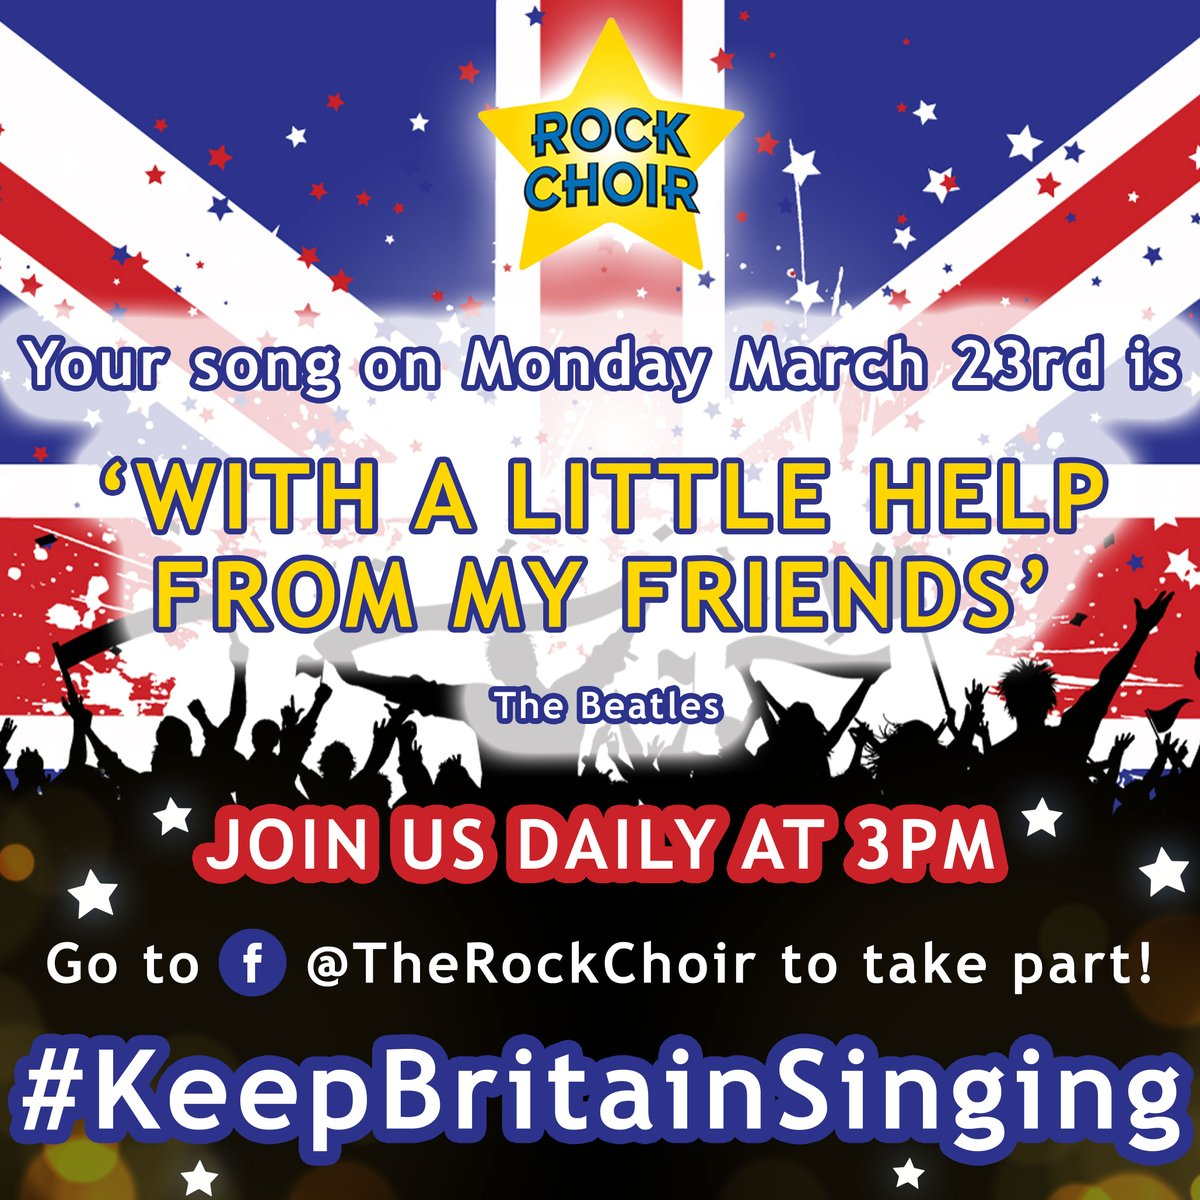 It's time to announce the first song we will be singing with you all tomorrow during our first ever #KeepBritainSinging LIVE at 3pm! 🇬🇧 We are super excited & cannot wait to get started with you all. Visit our latest post  for more info! ⭐ #RockChoir